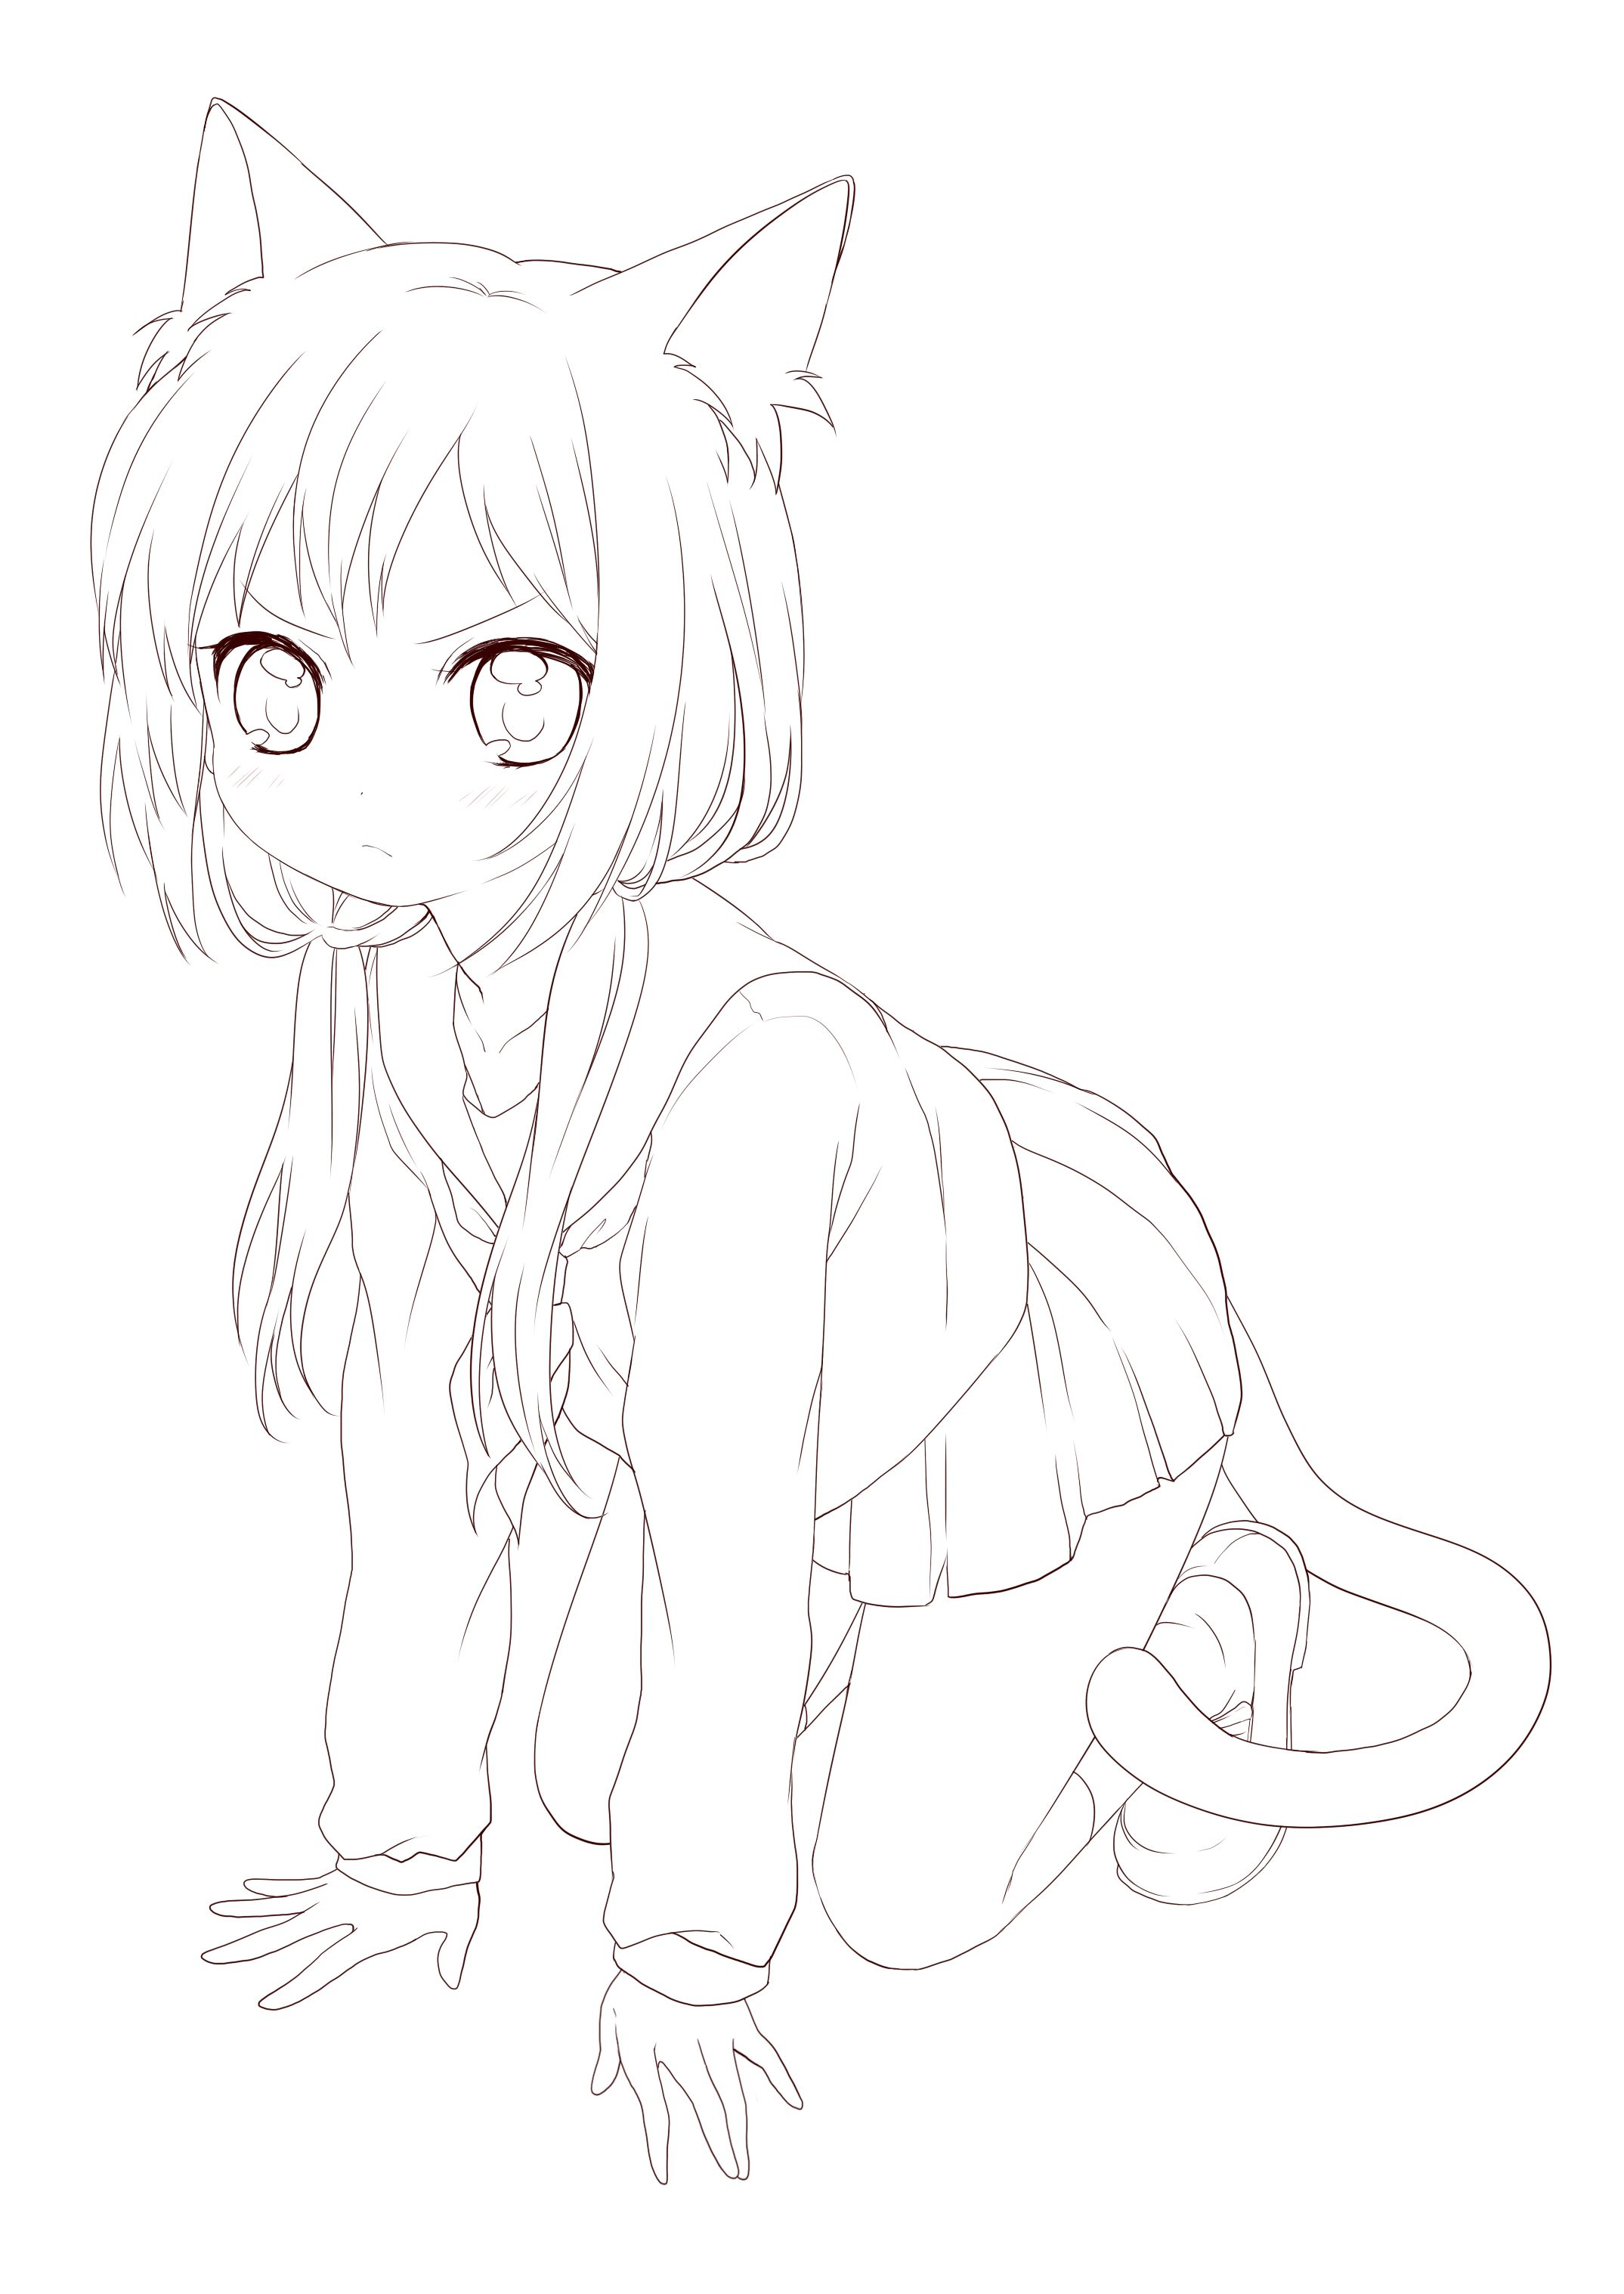 Anime Lineart Anime Drawings Sketches Anime Lineart Anime Sketch